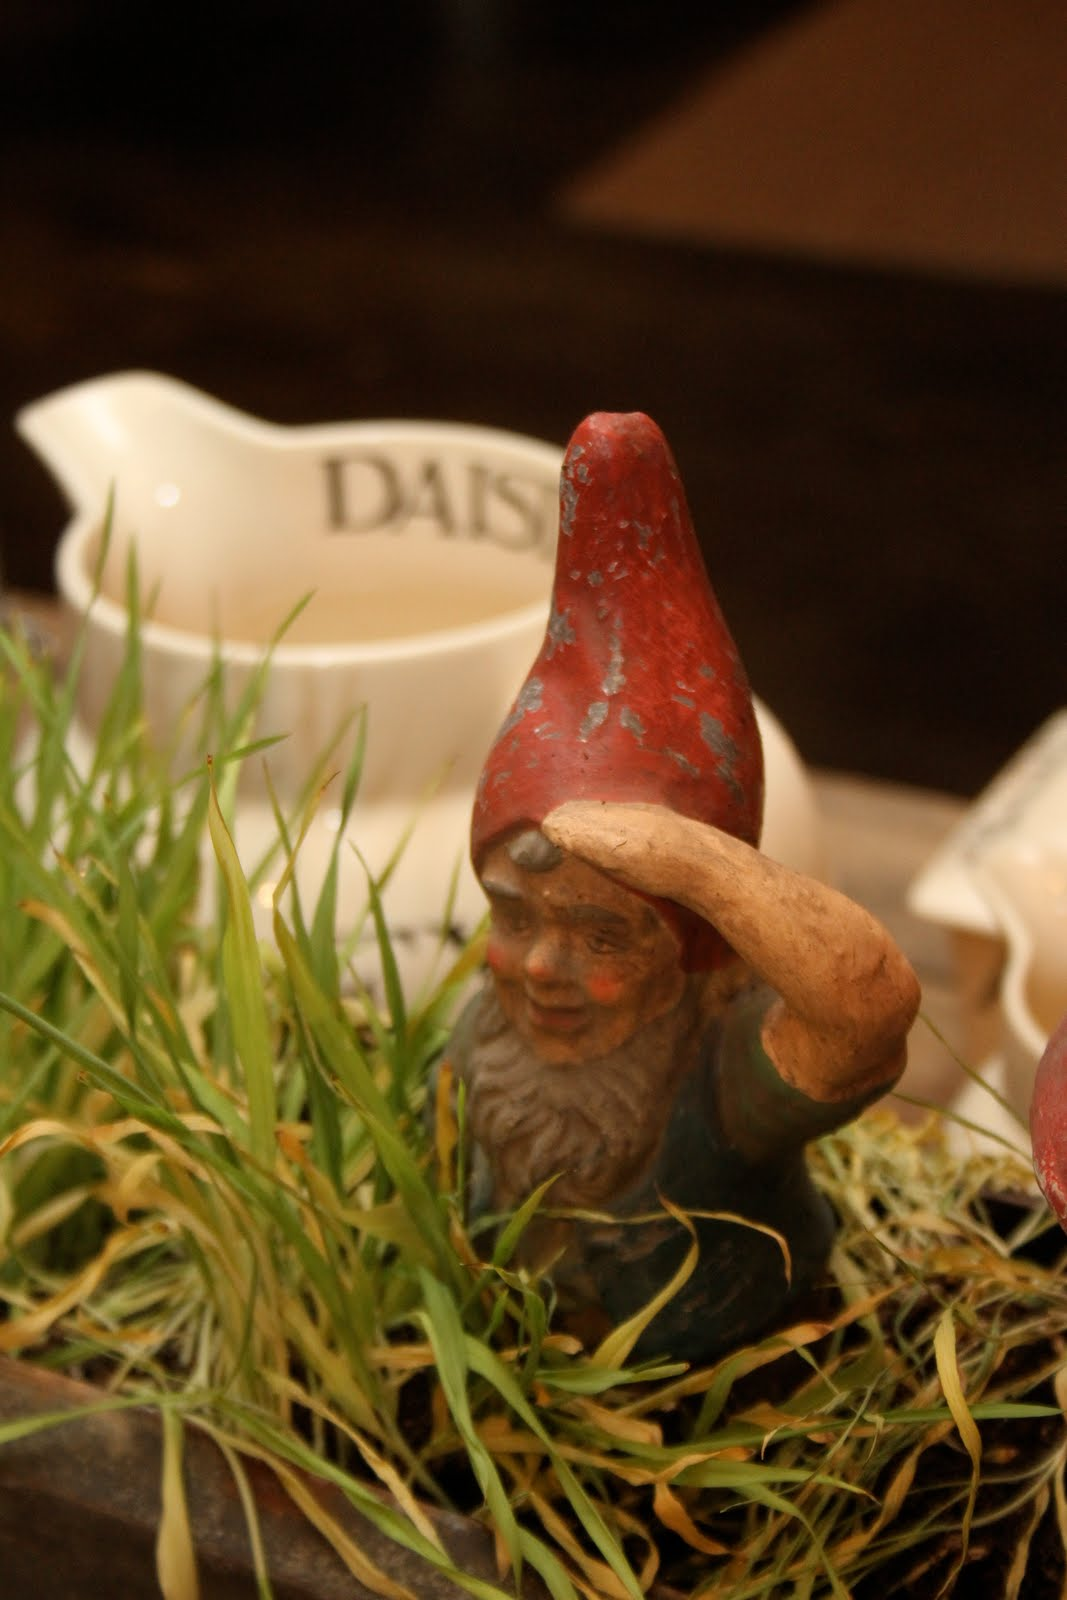 Right after rearranging the garden - The Willows Home Amp Garden Gnomes In The Garden